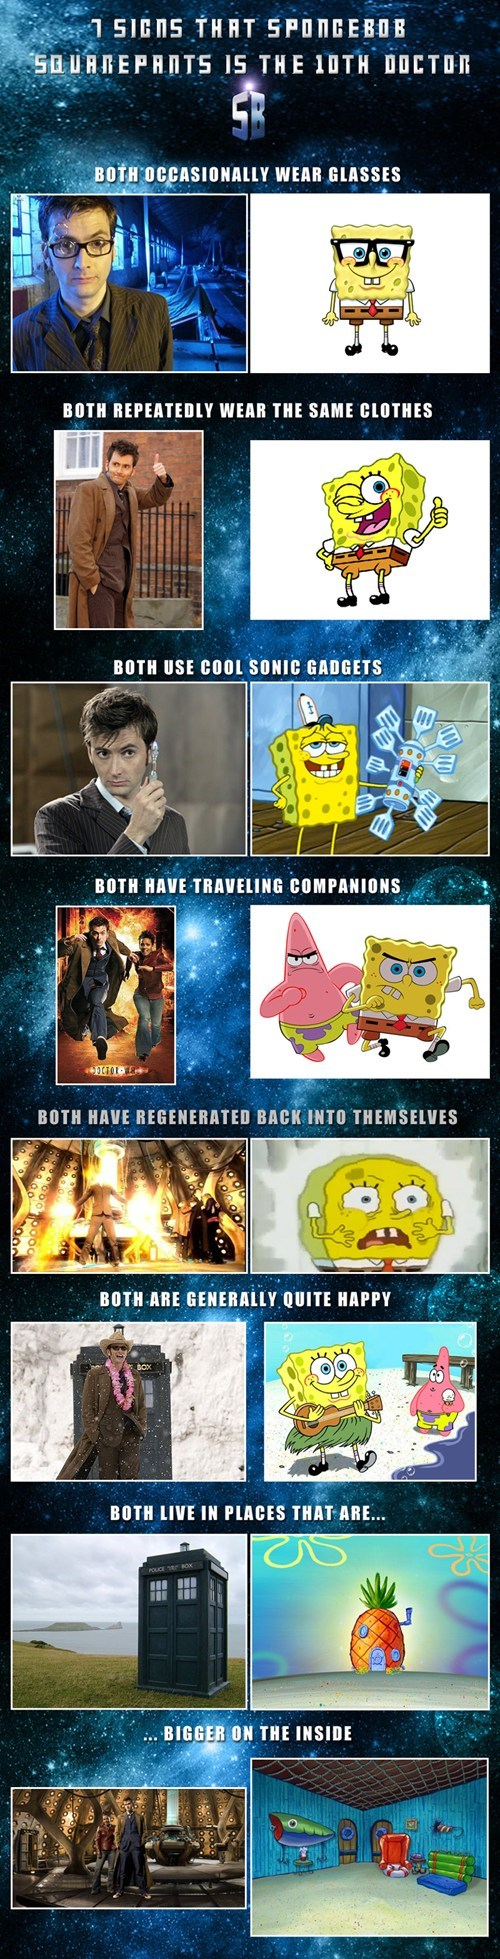 10th doctor,crossover,cartoons,SpongeBob SquarePants